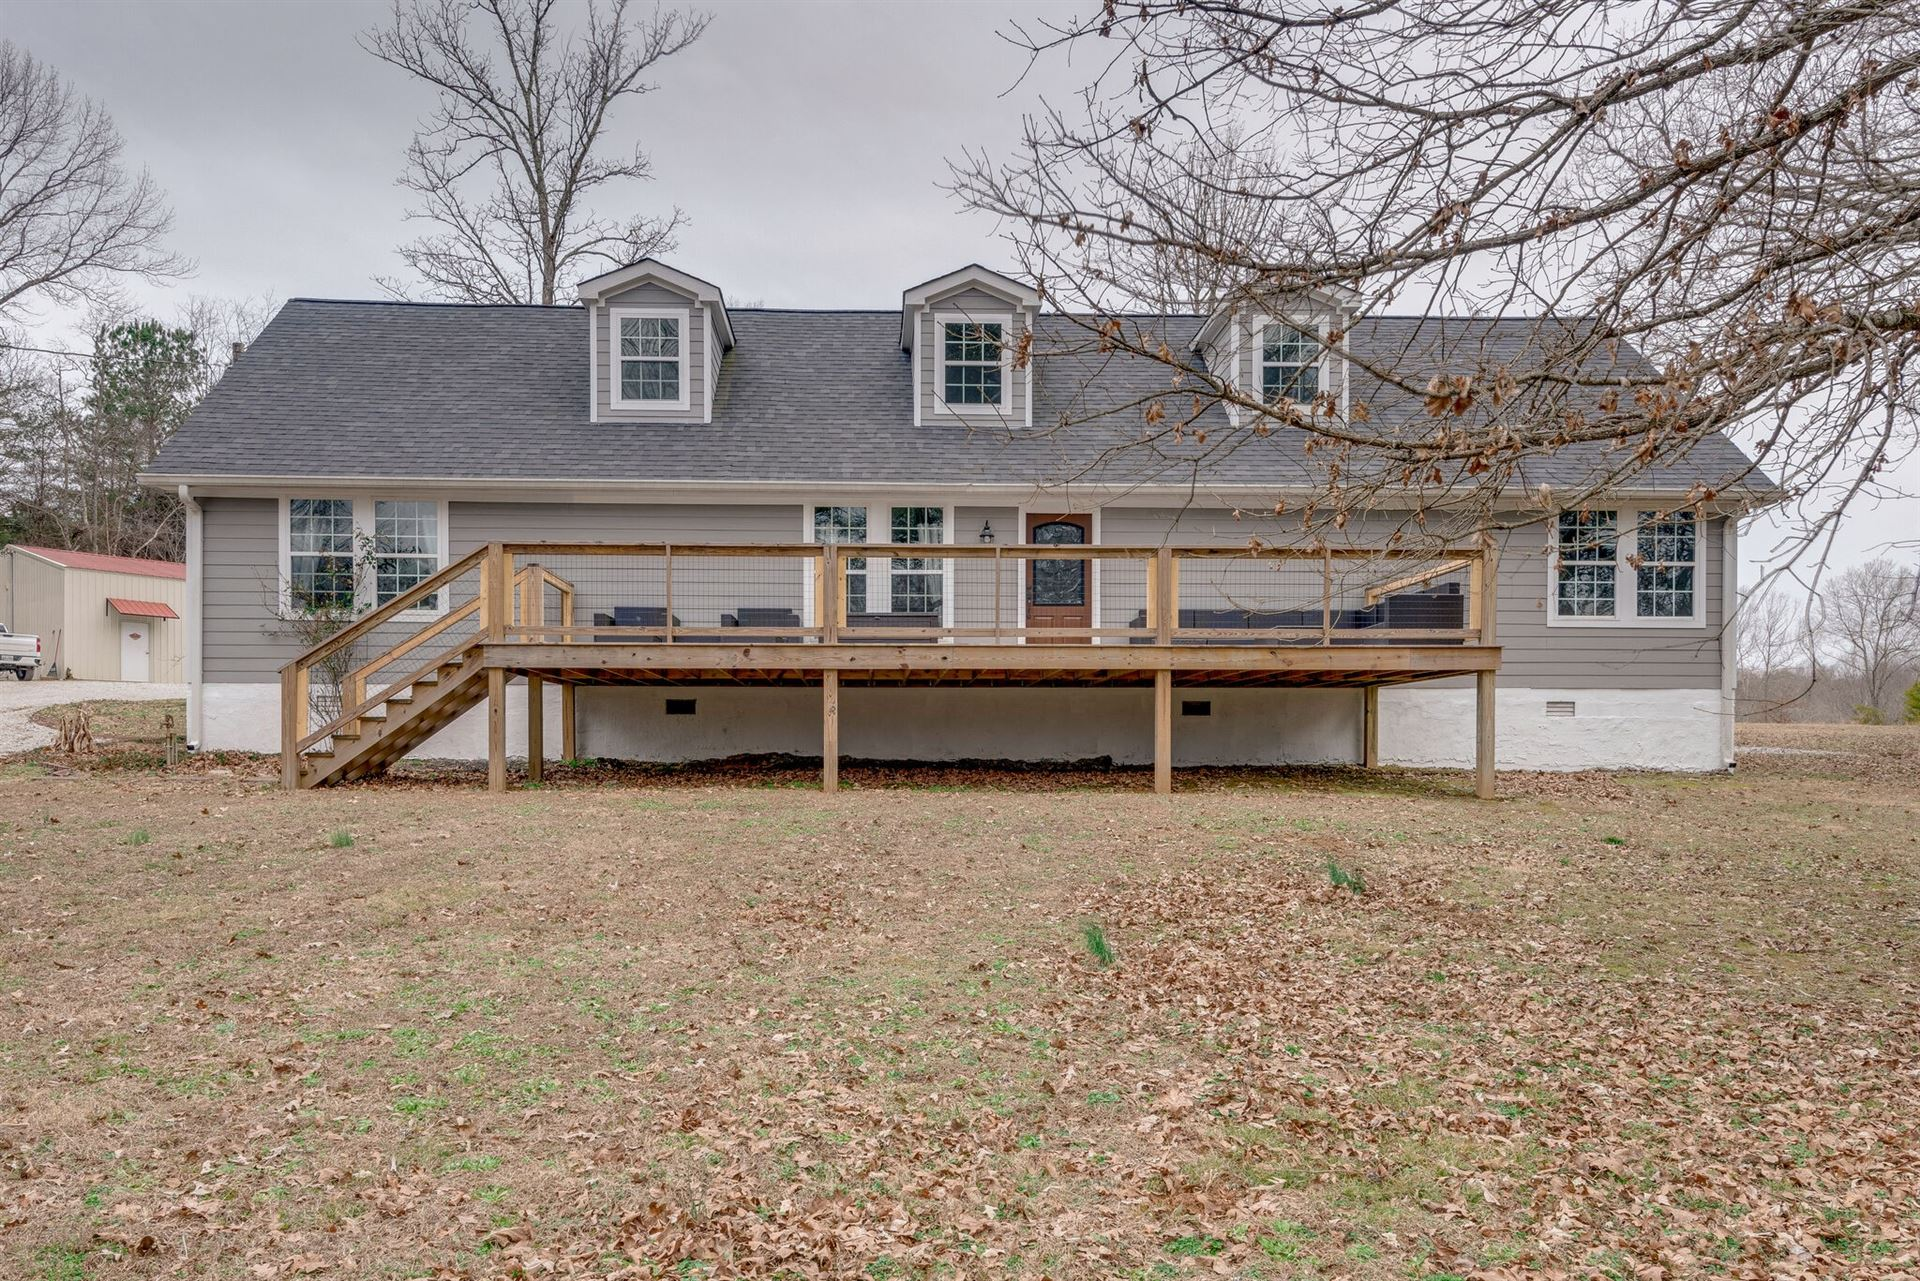 1984 Spencer Mill Rd, Burns, TN 37029 - MLS#: 2227335